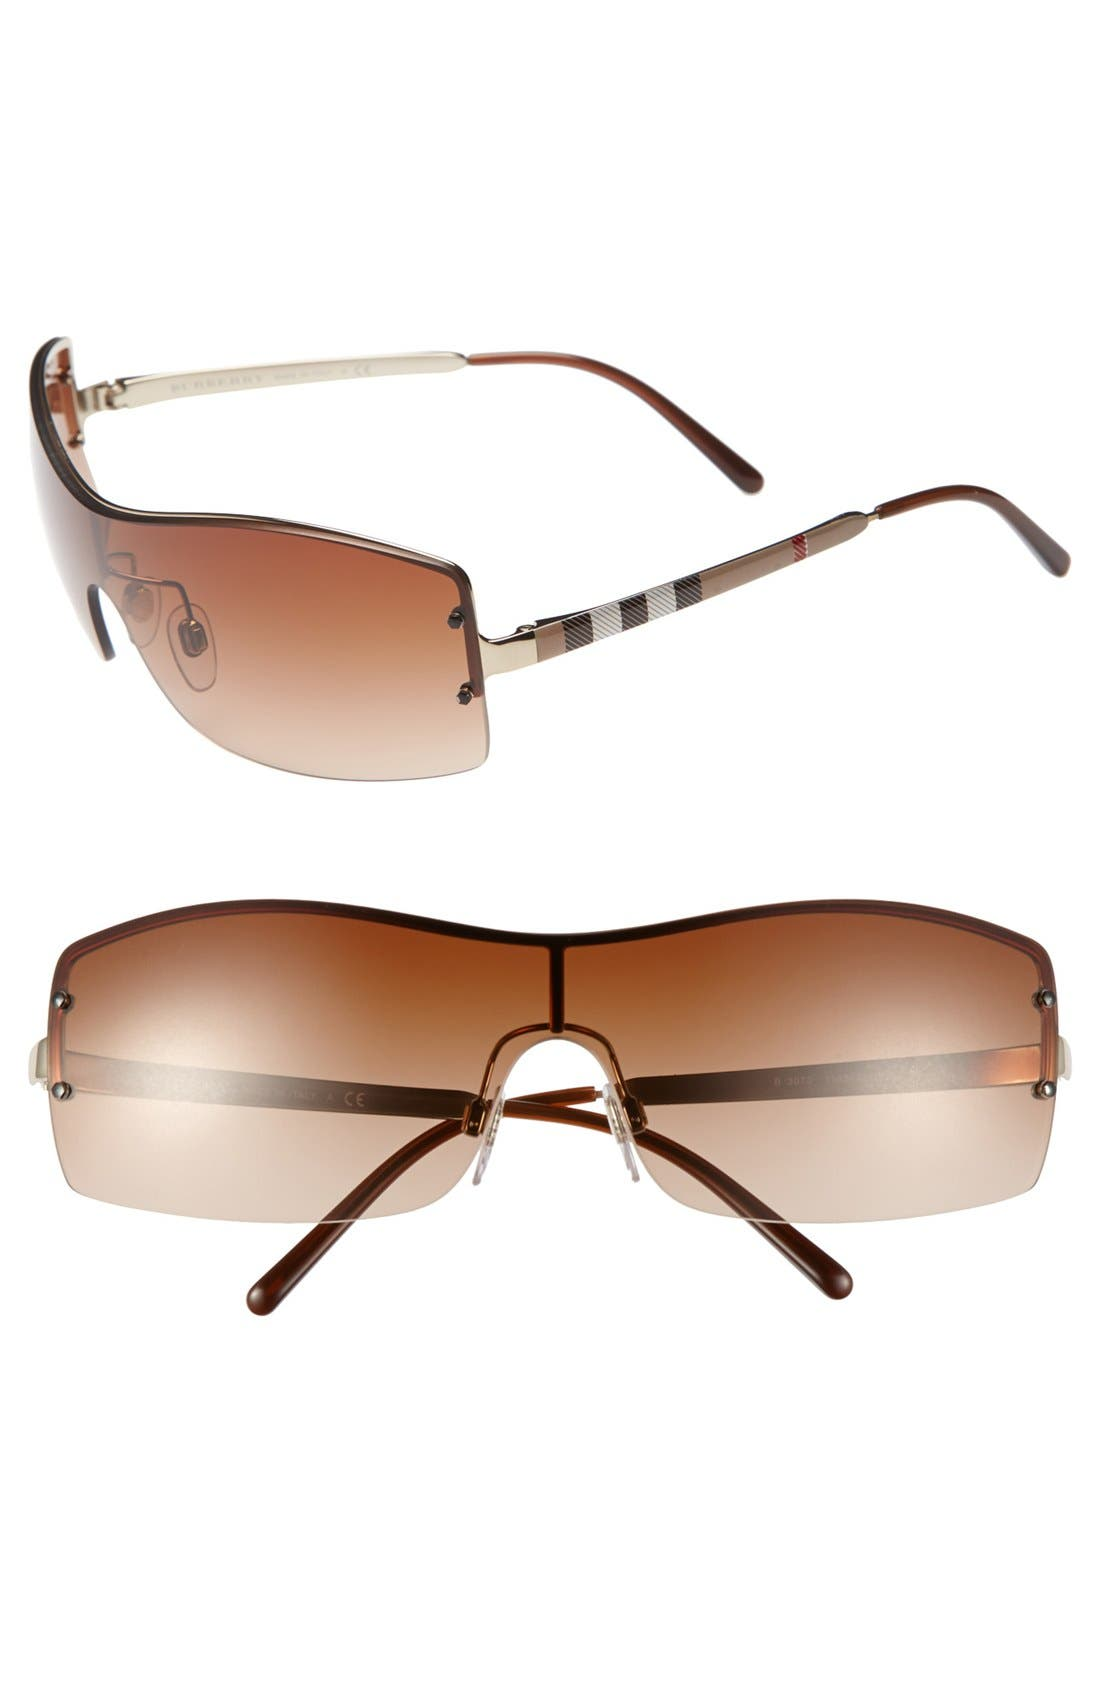 Main Image - Burberry 'House Check Foil' 70mm Shield Sunglasses